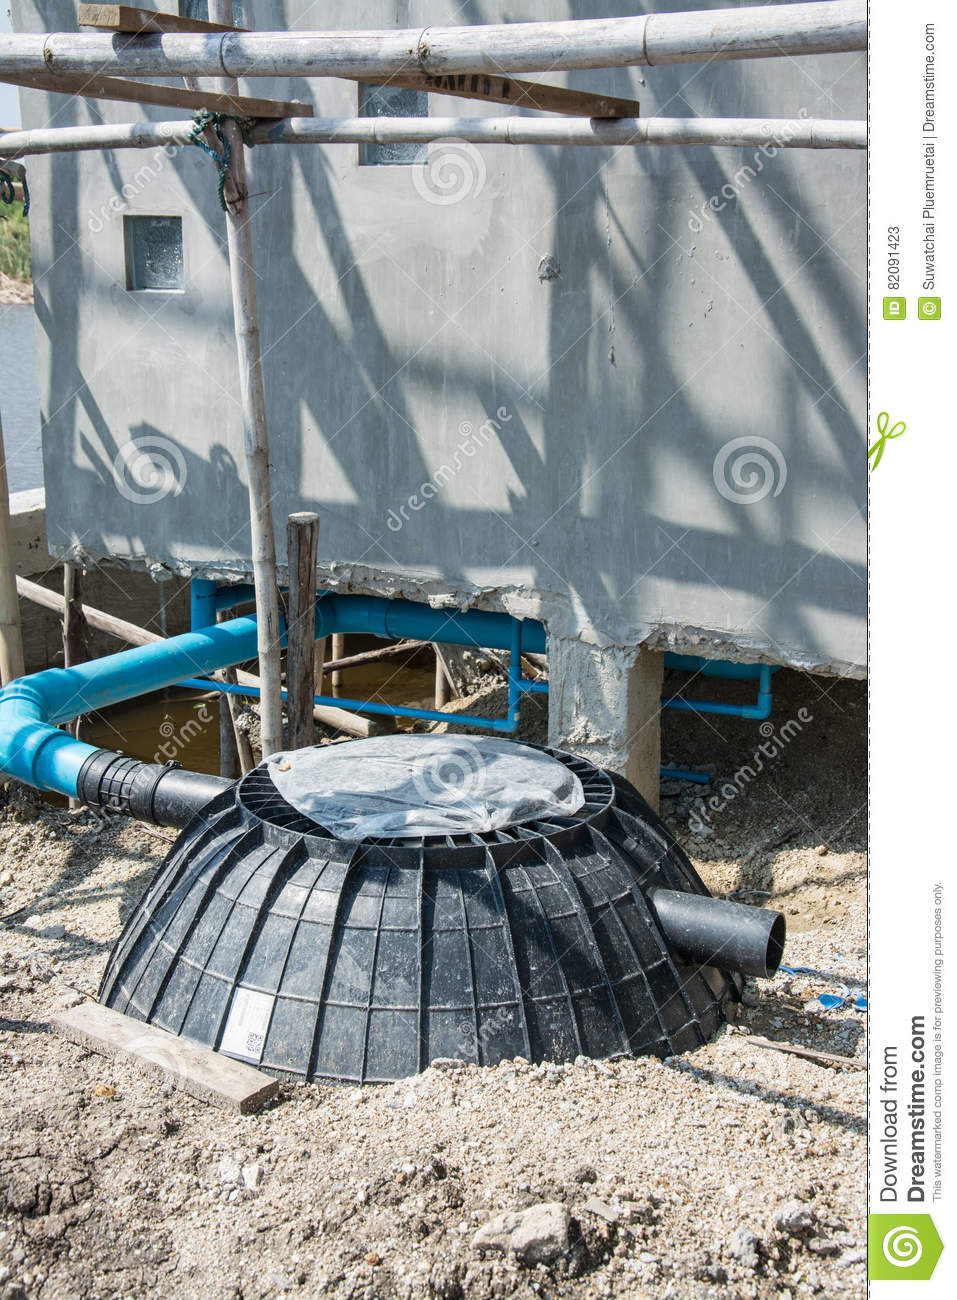 Waste Treatment Tank Or Septic Tank Installation In